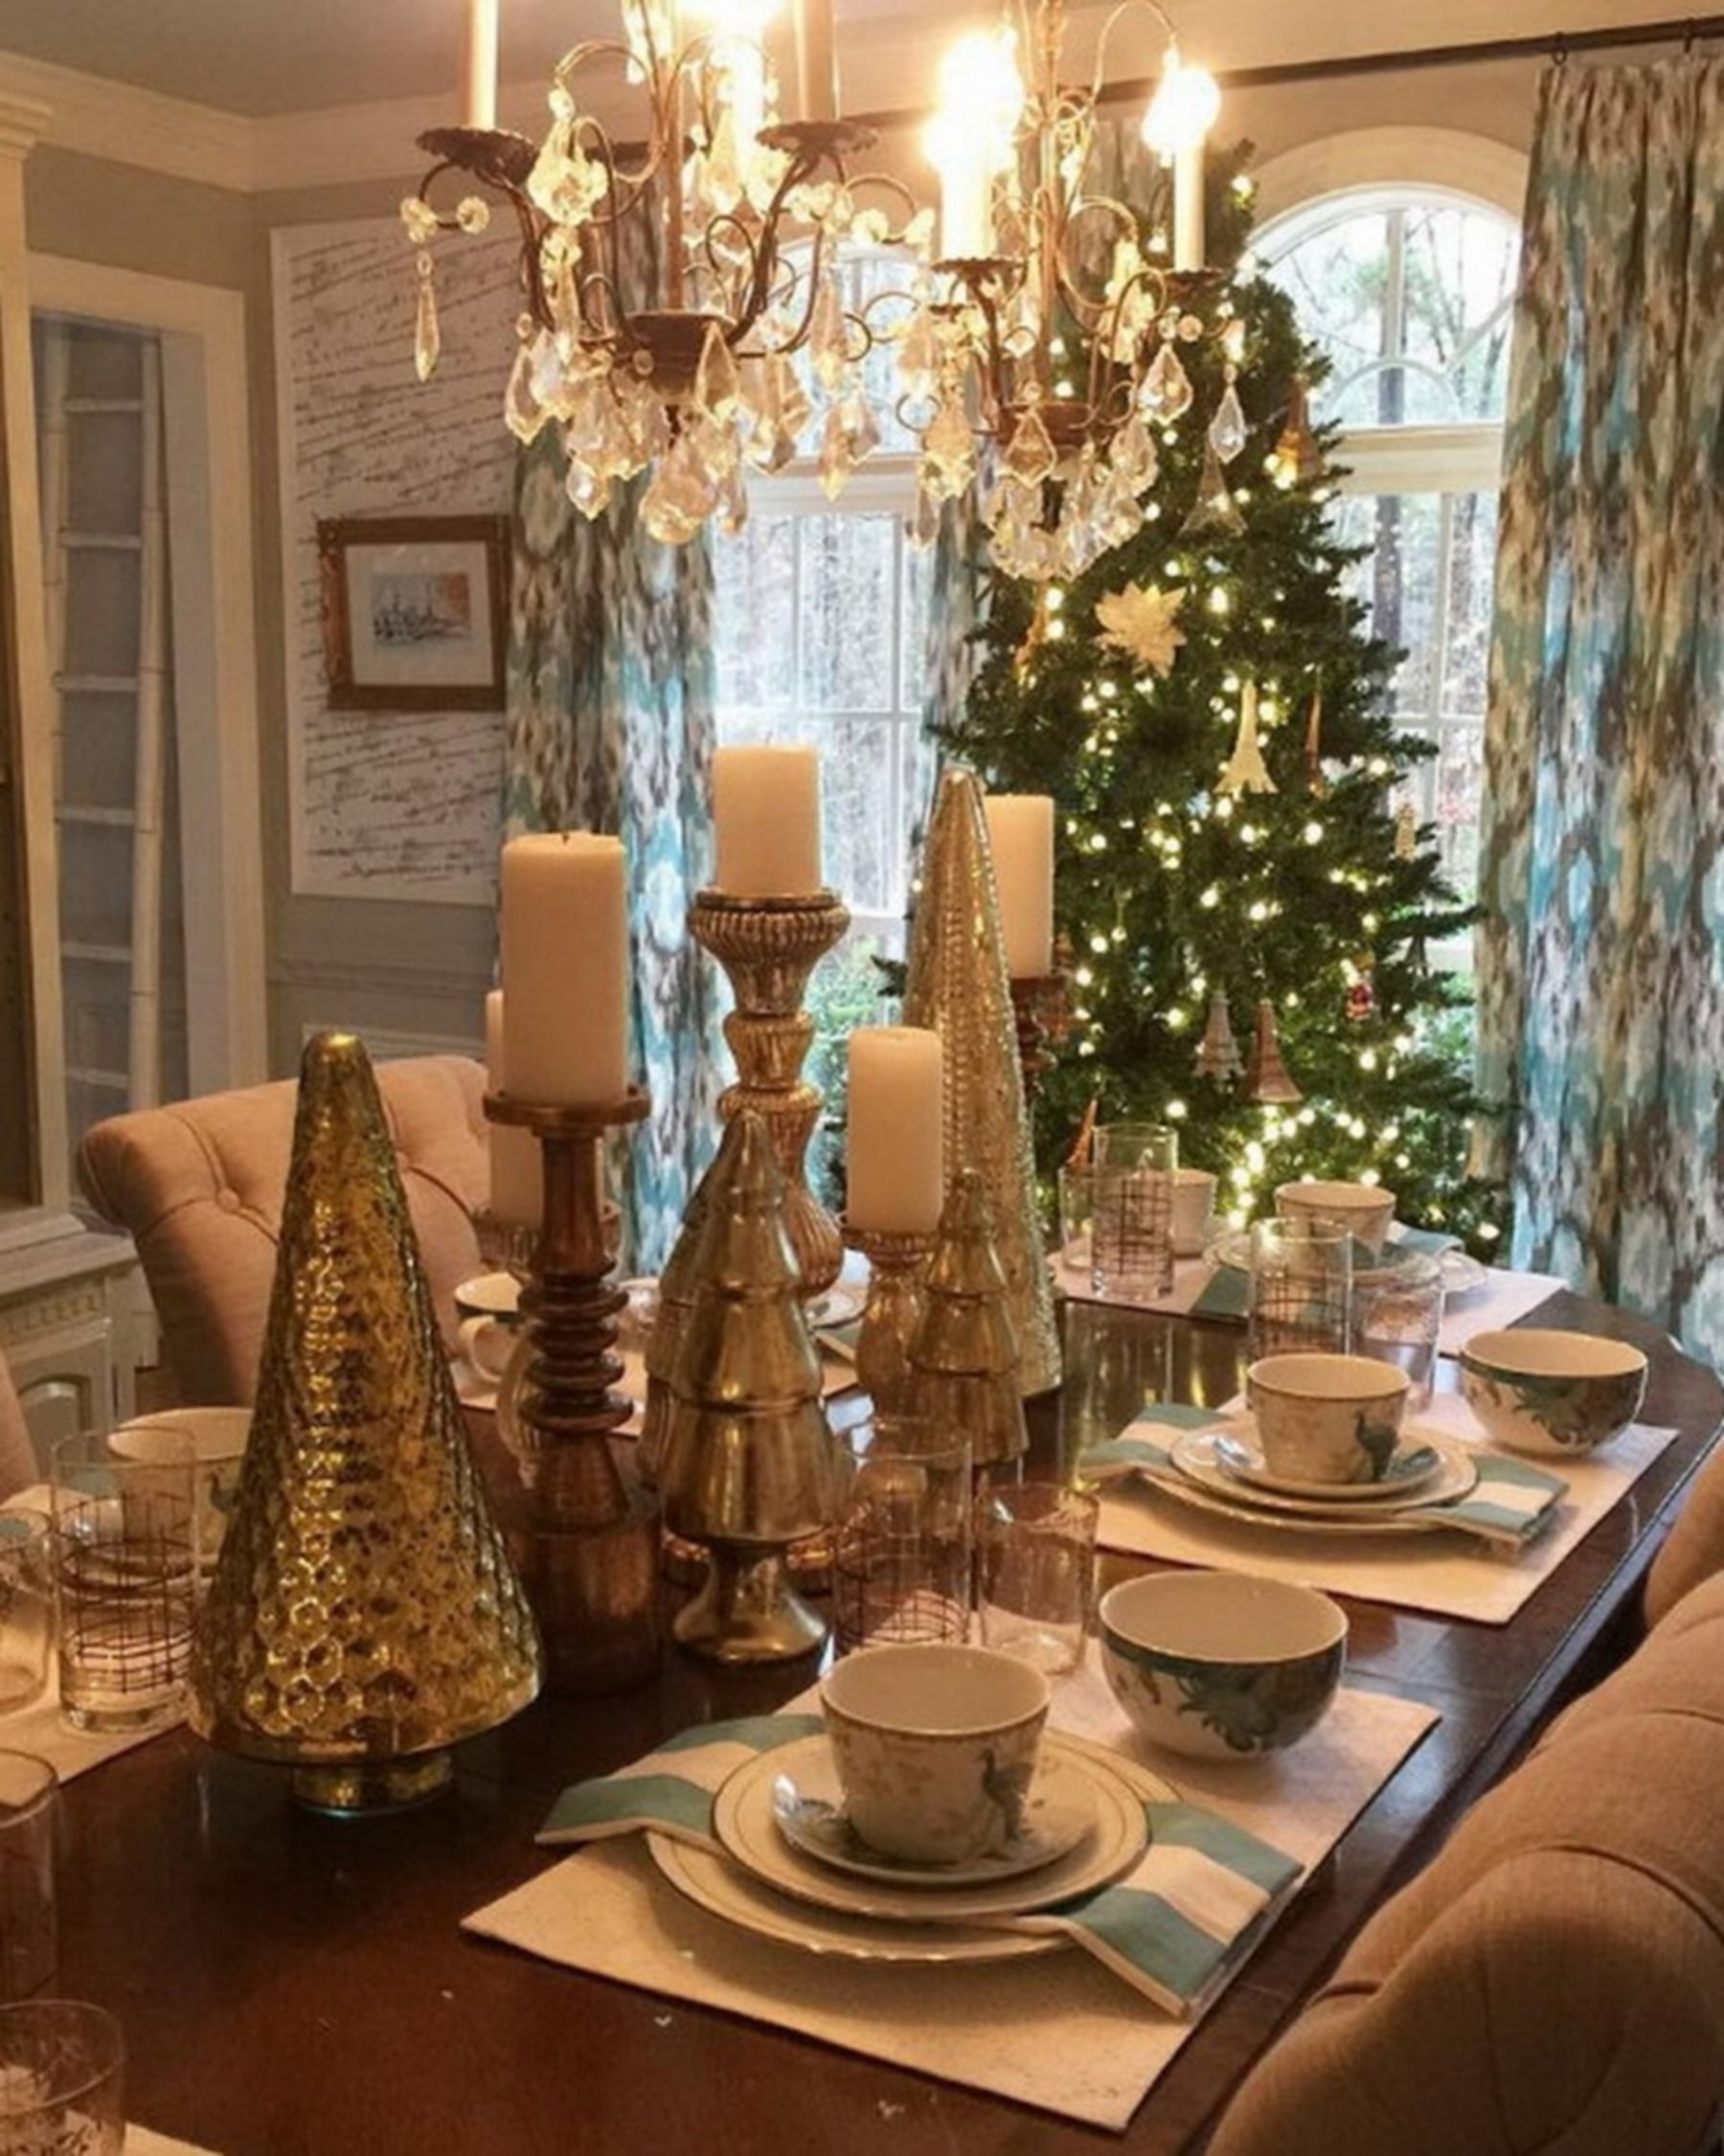 Astounding 10 best modern christmas decoration ideas for your home interior https